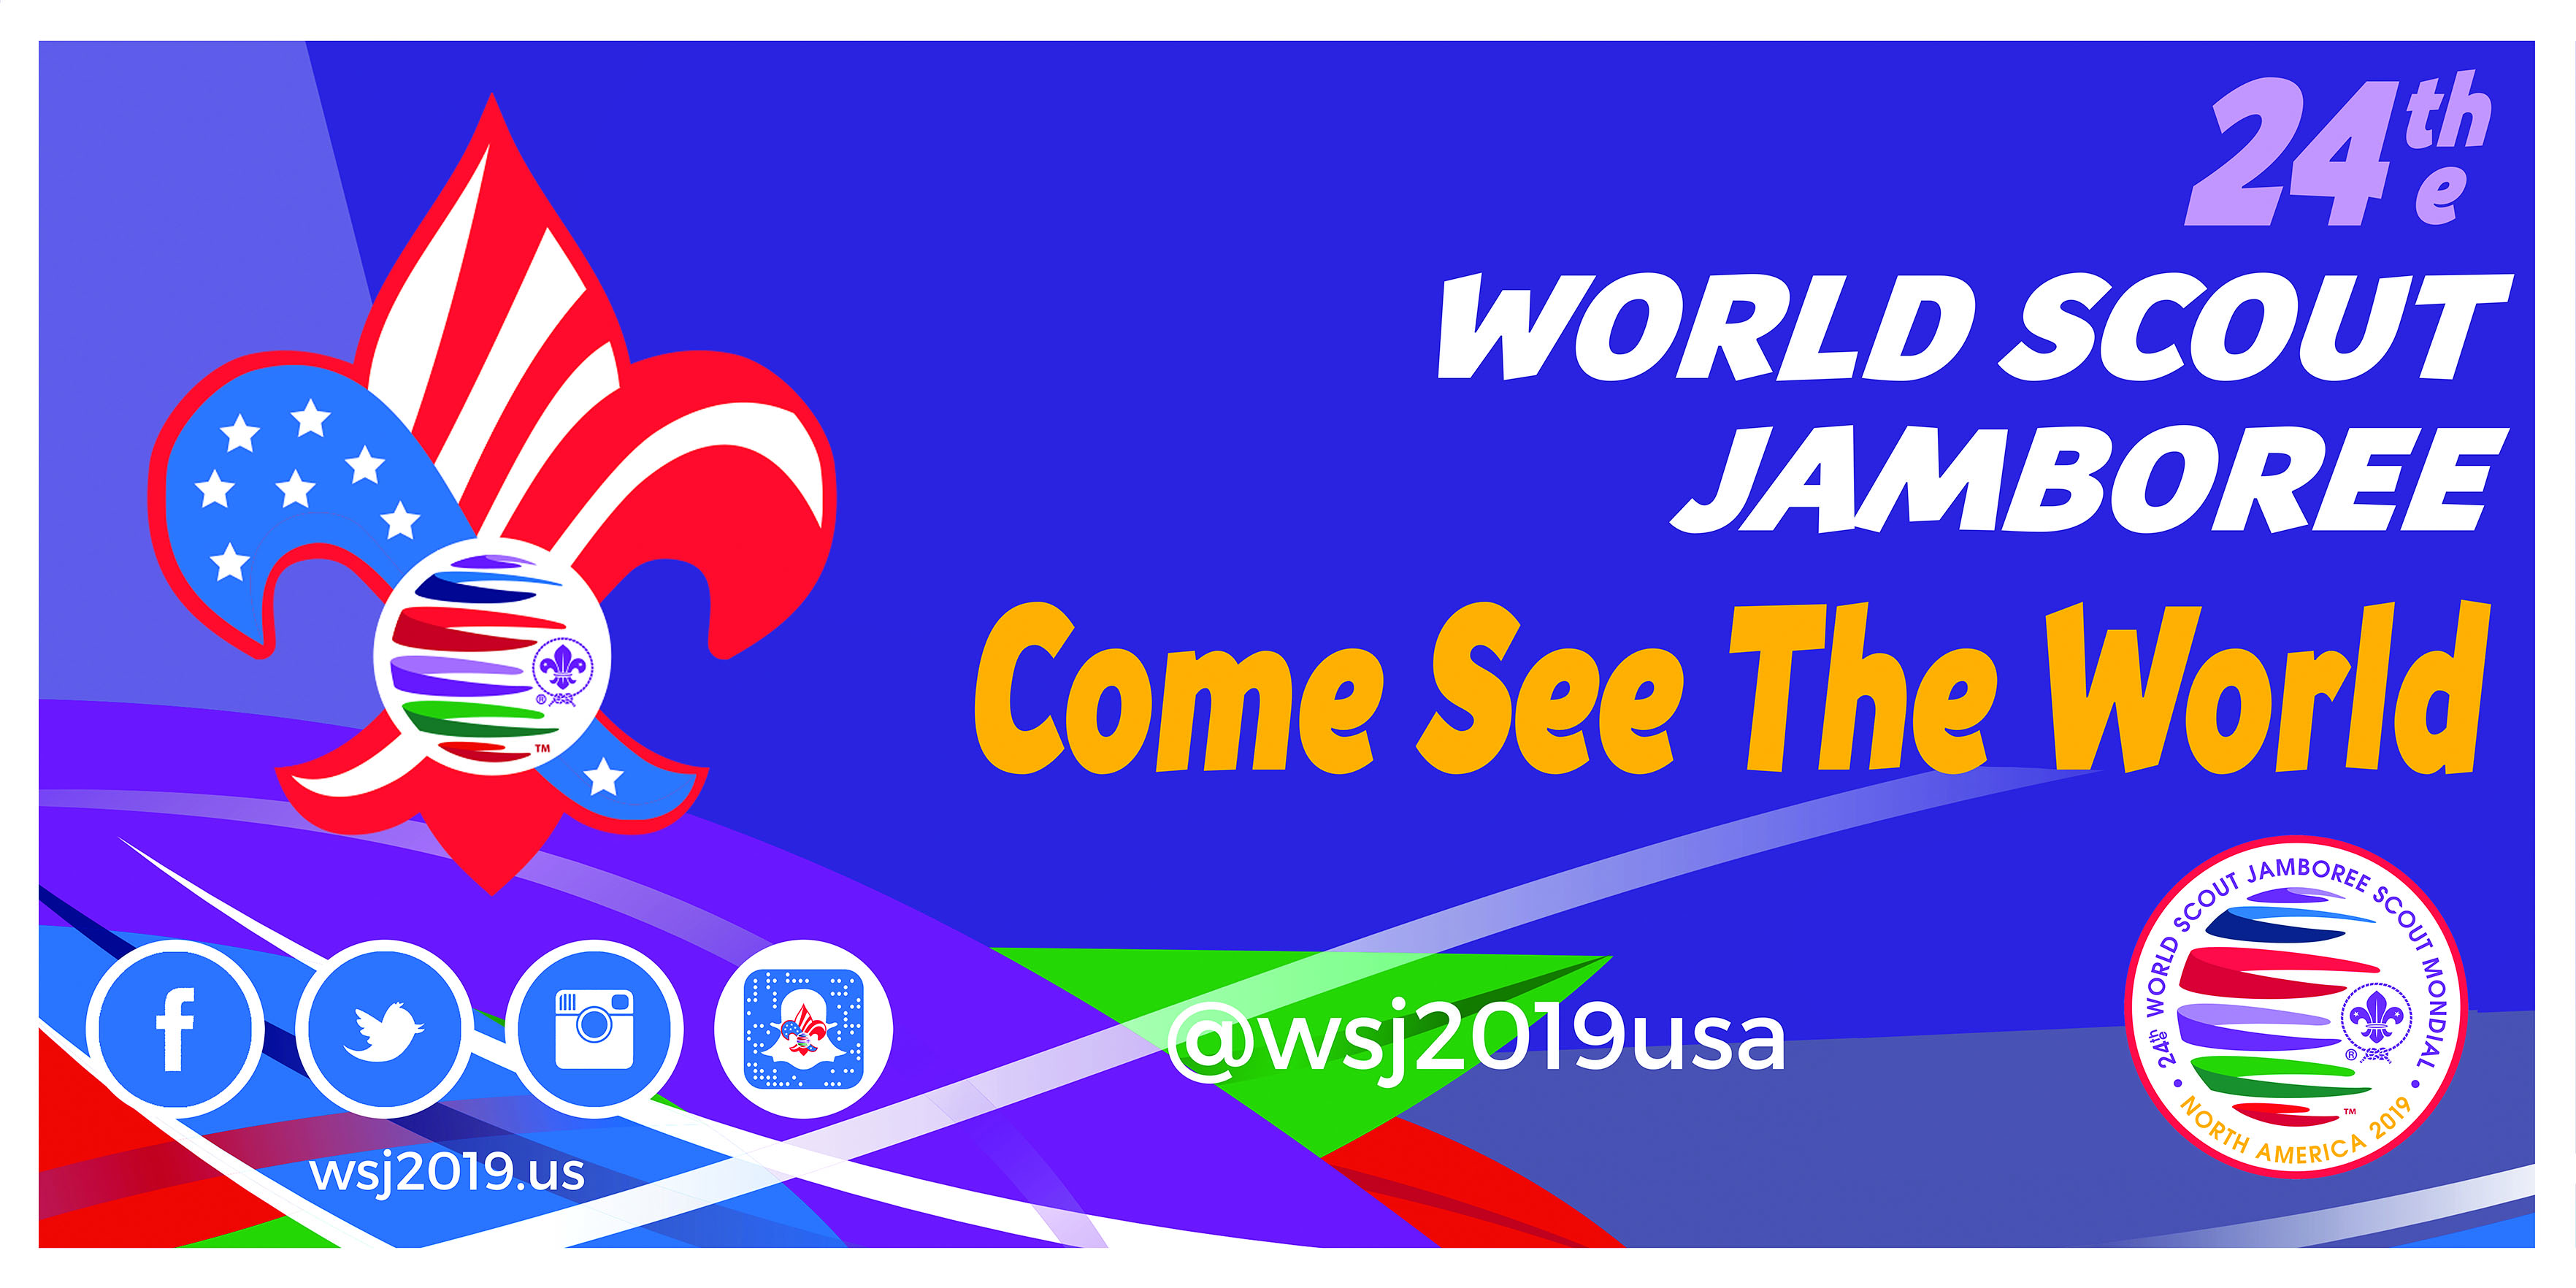 World Scouting Jamboree 2019